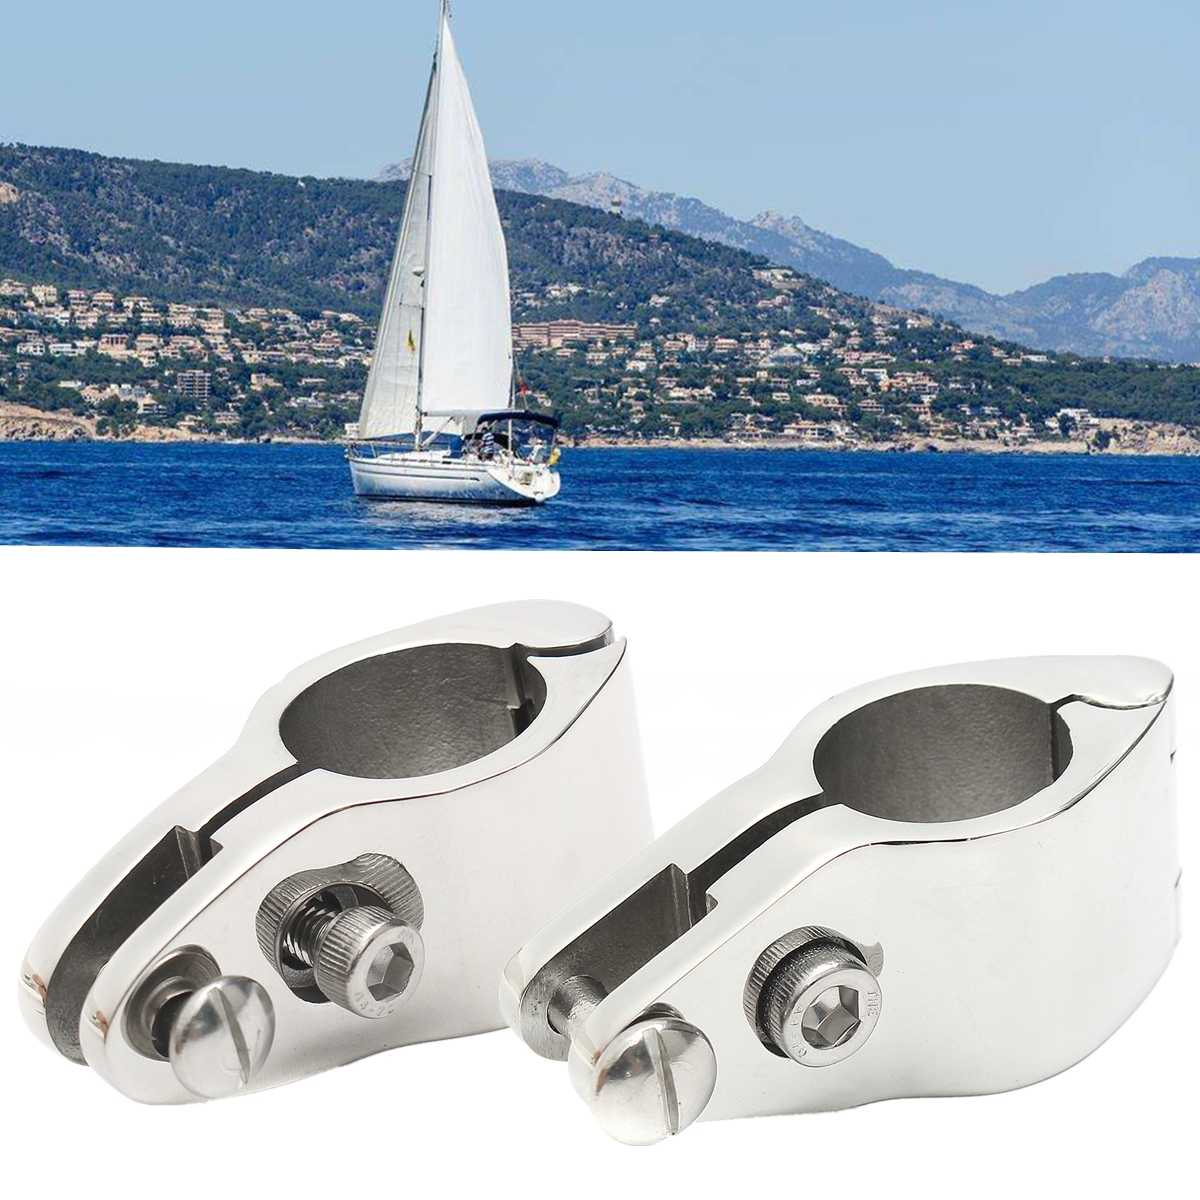 22/25mm 316 Stainless Steel Fitting Boat Bimini Top Hinged Jaw Slide Marine  Hardware With 2 Screws Easy Install